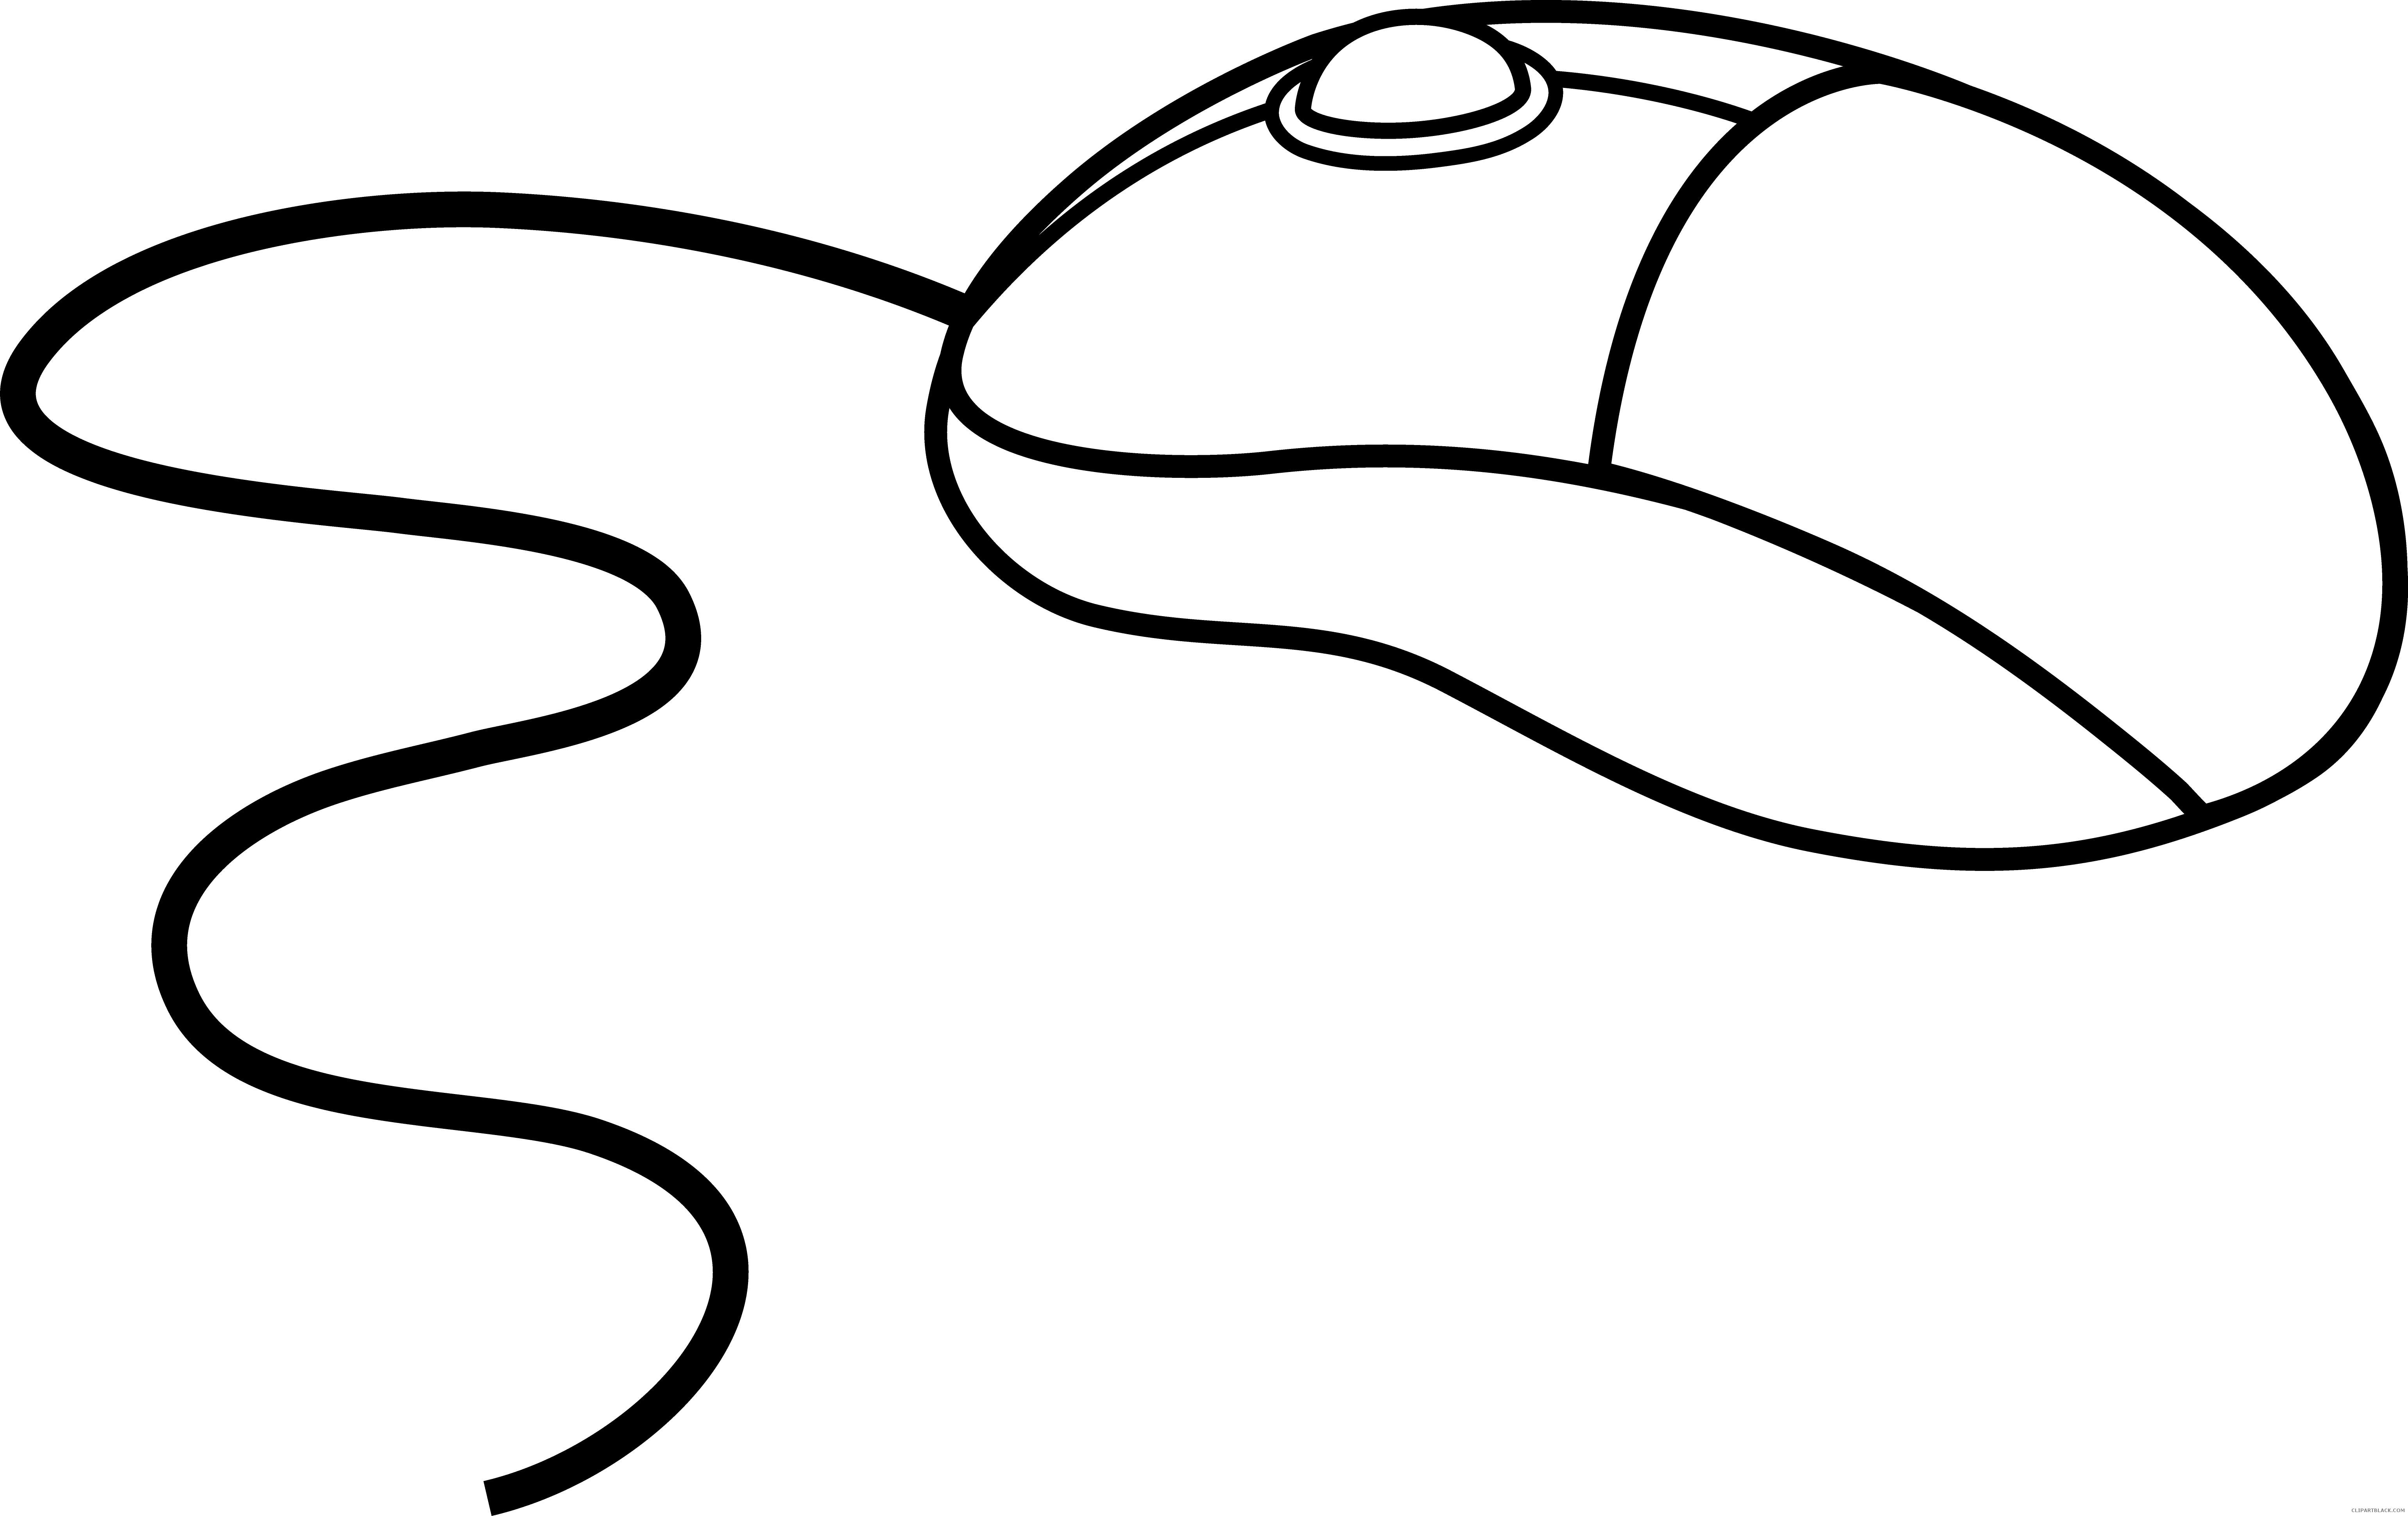 Mouse clipartblack com tools. Clipart computer outline